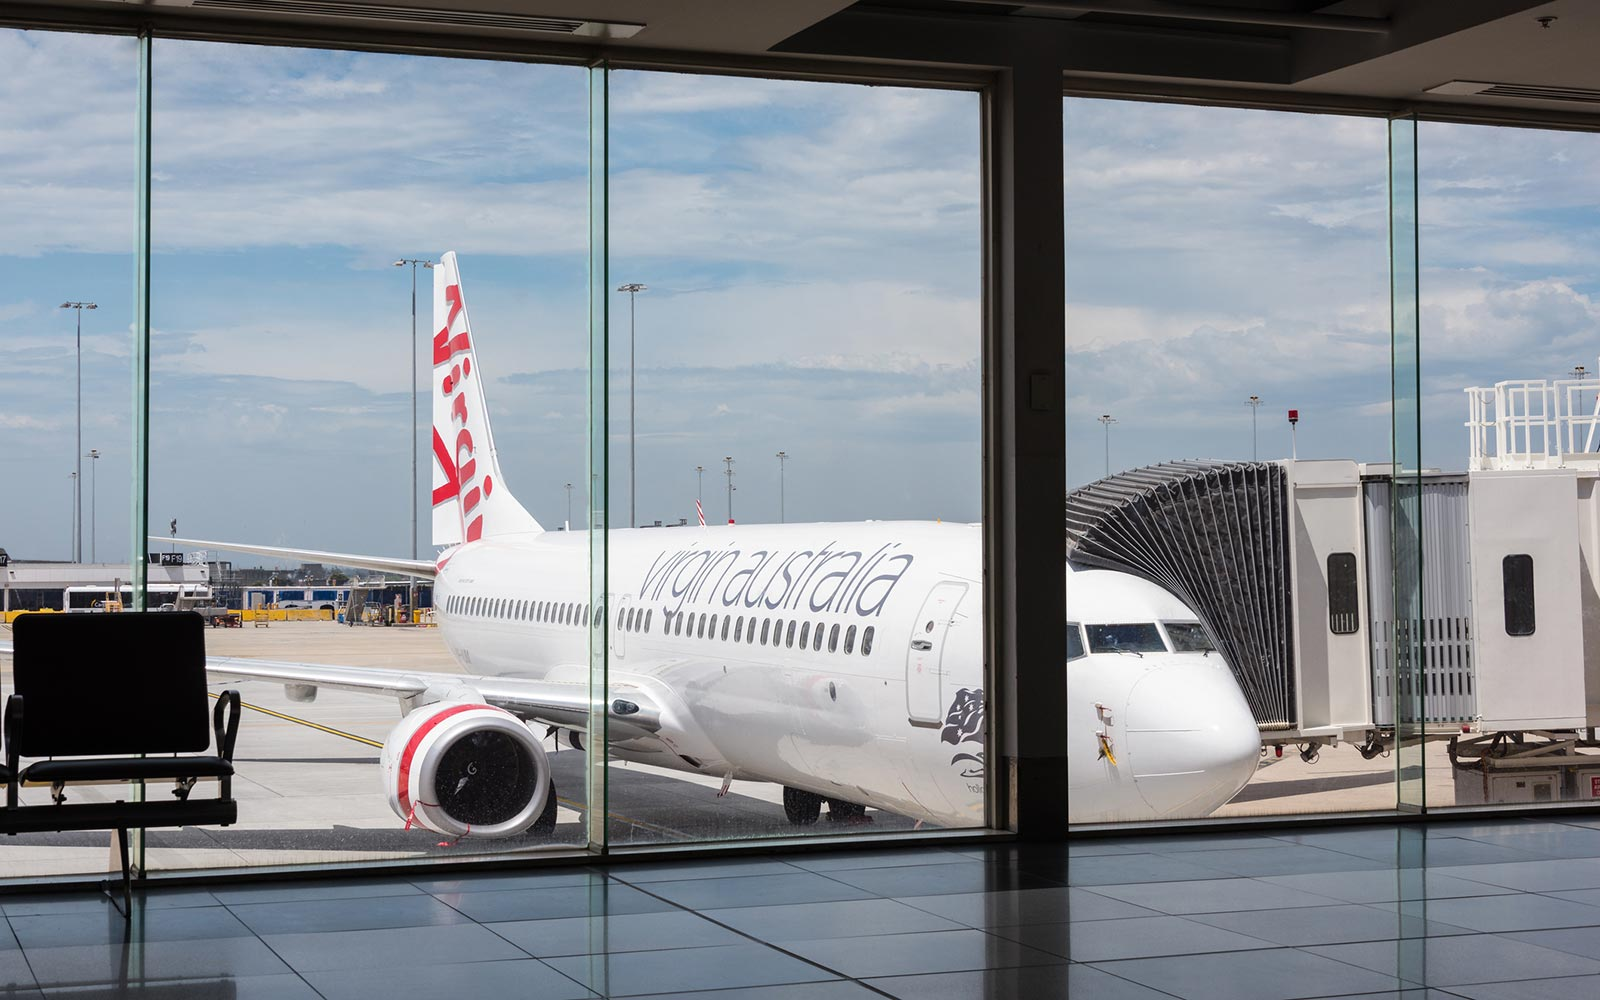 Virgin Australia Apologizes After 9-year-old Unaccompanied Minor Had to Sleep Overnight in Airport Lounge